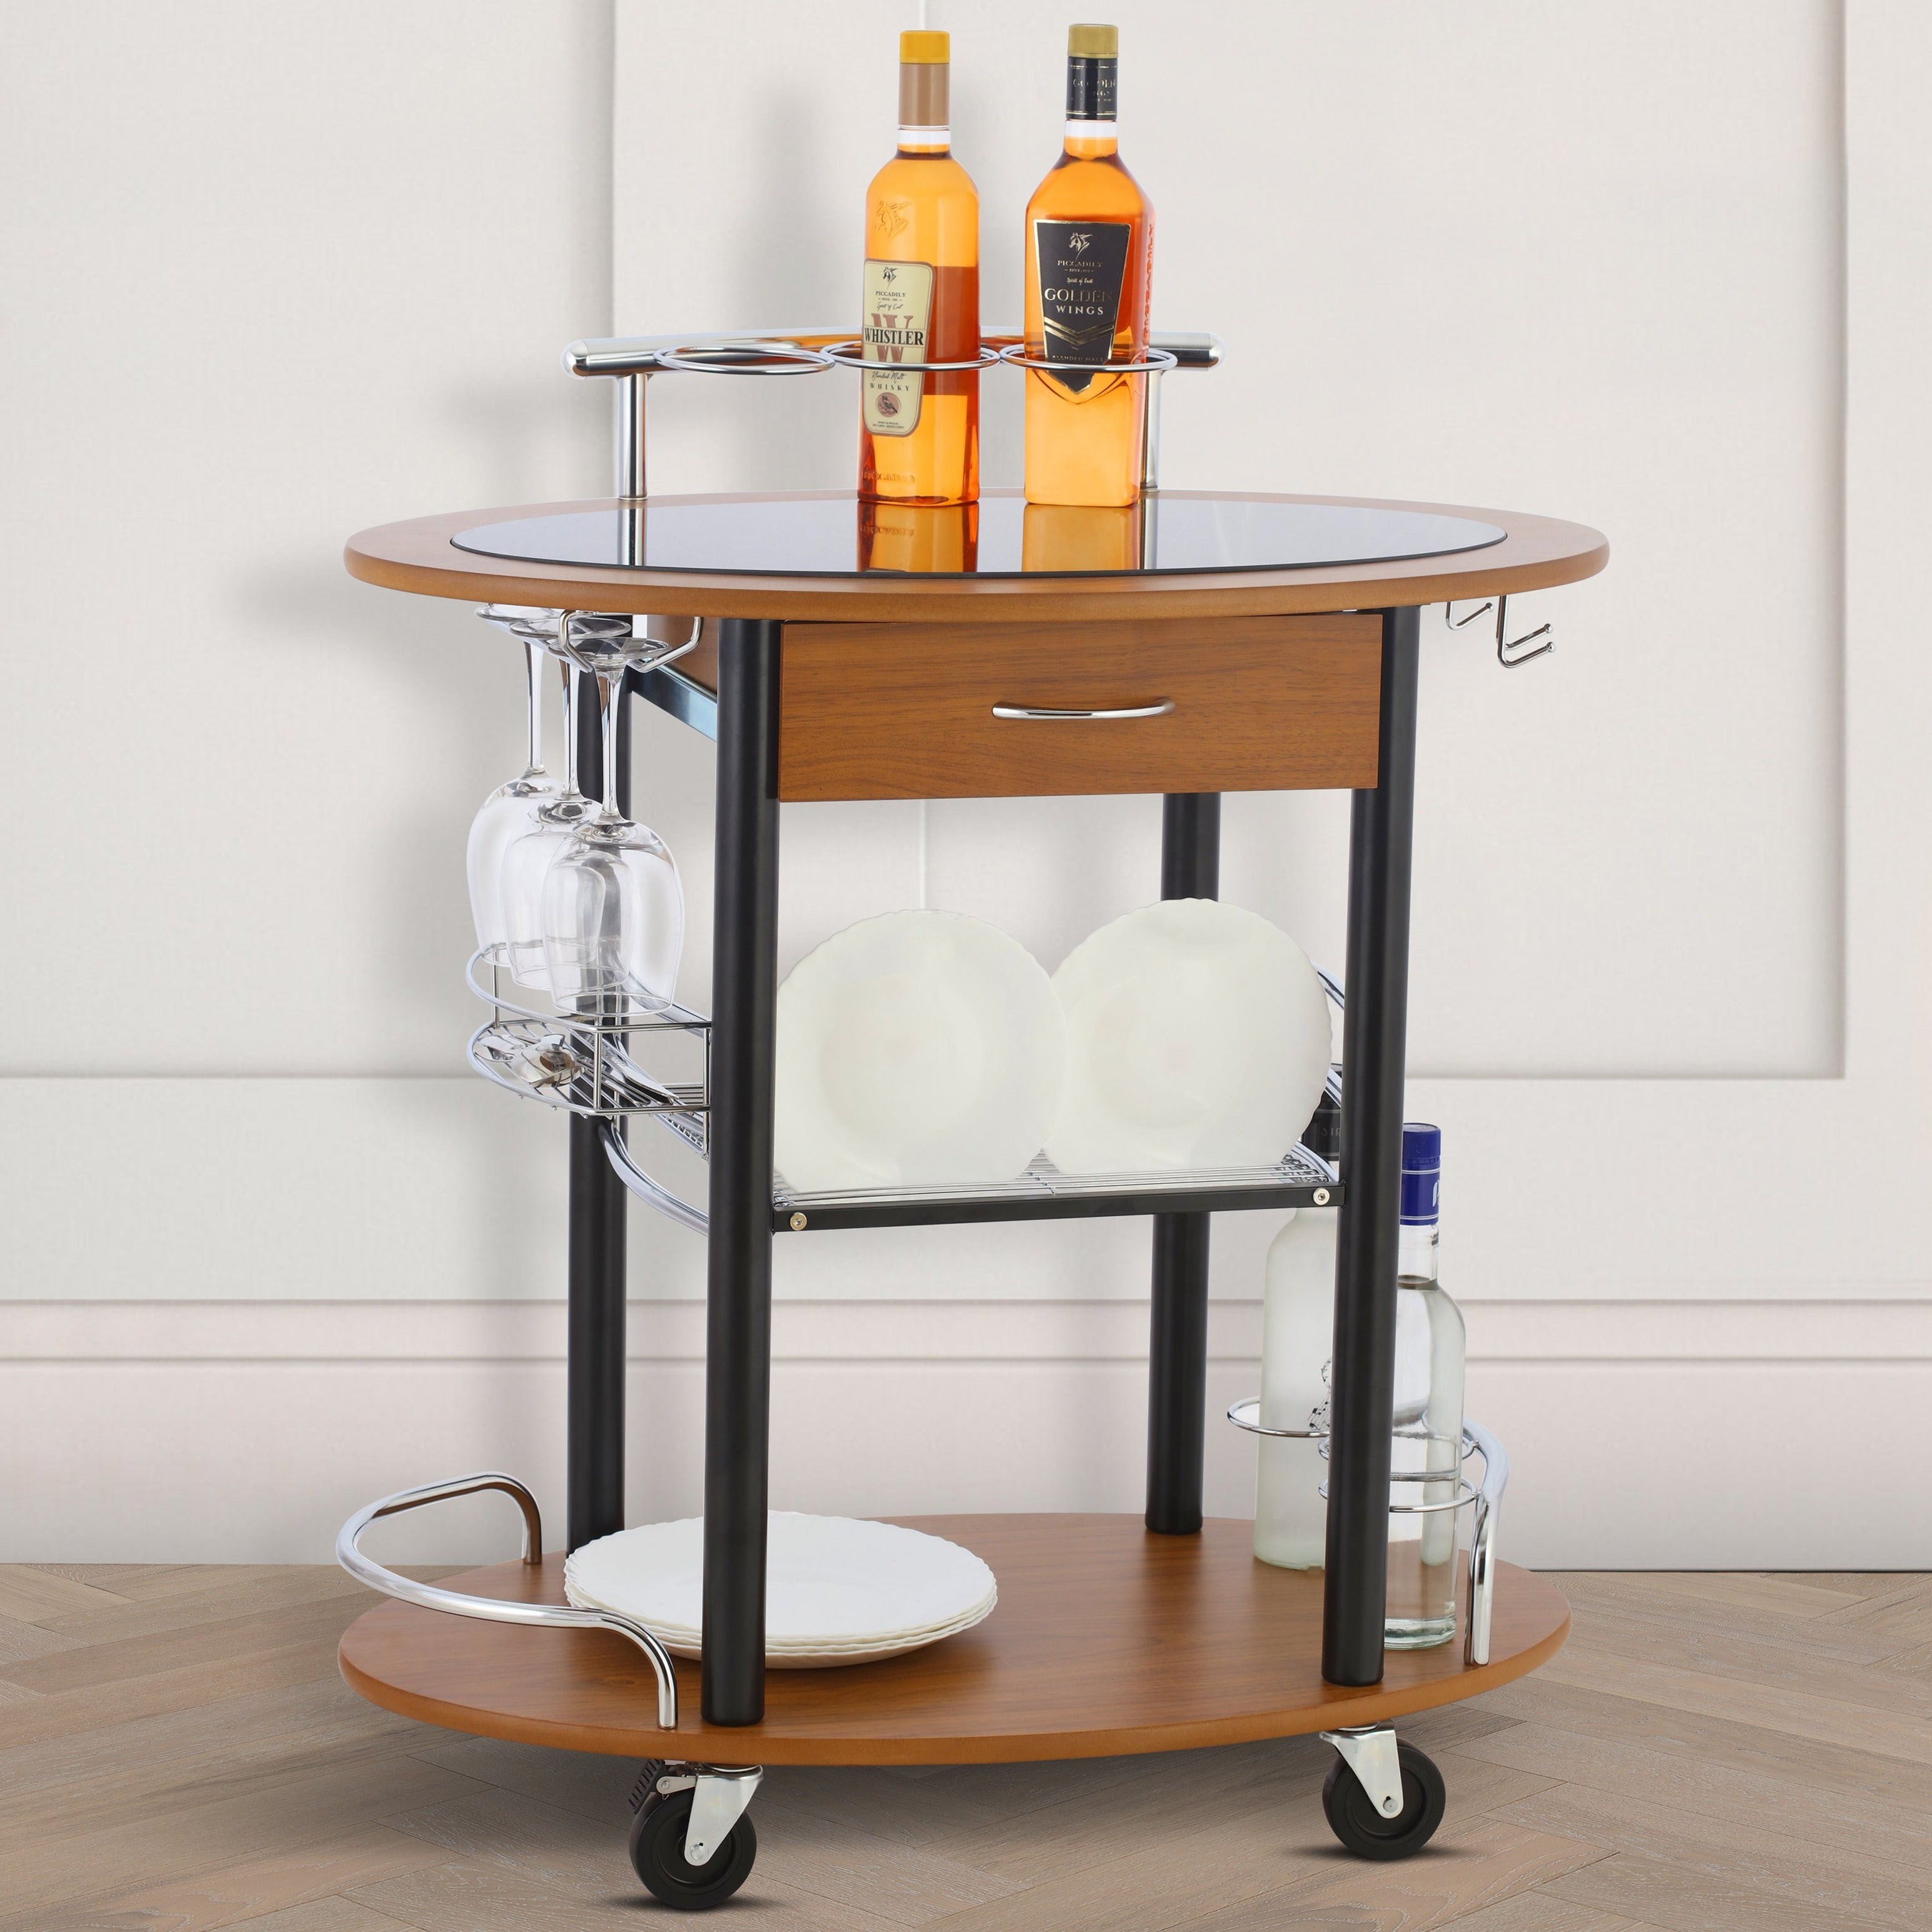 Wooden Trolley With Metal Frame - Walnut